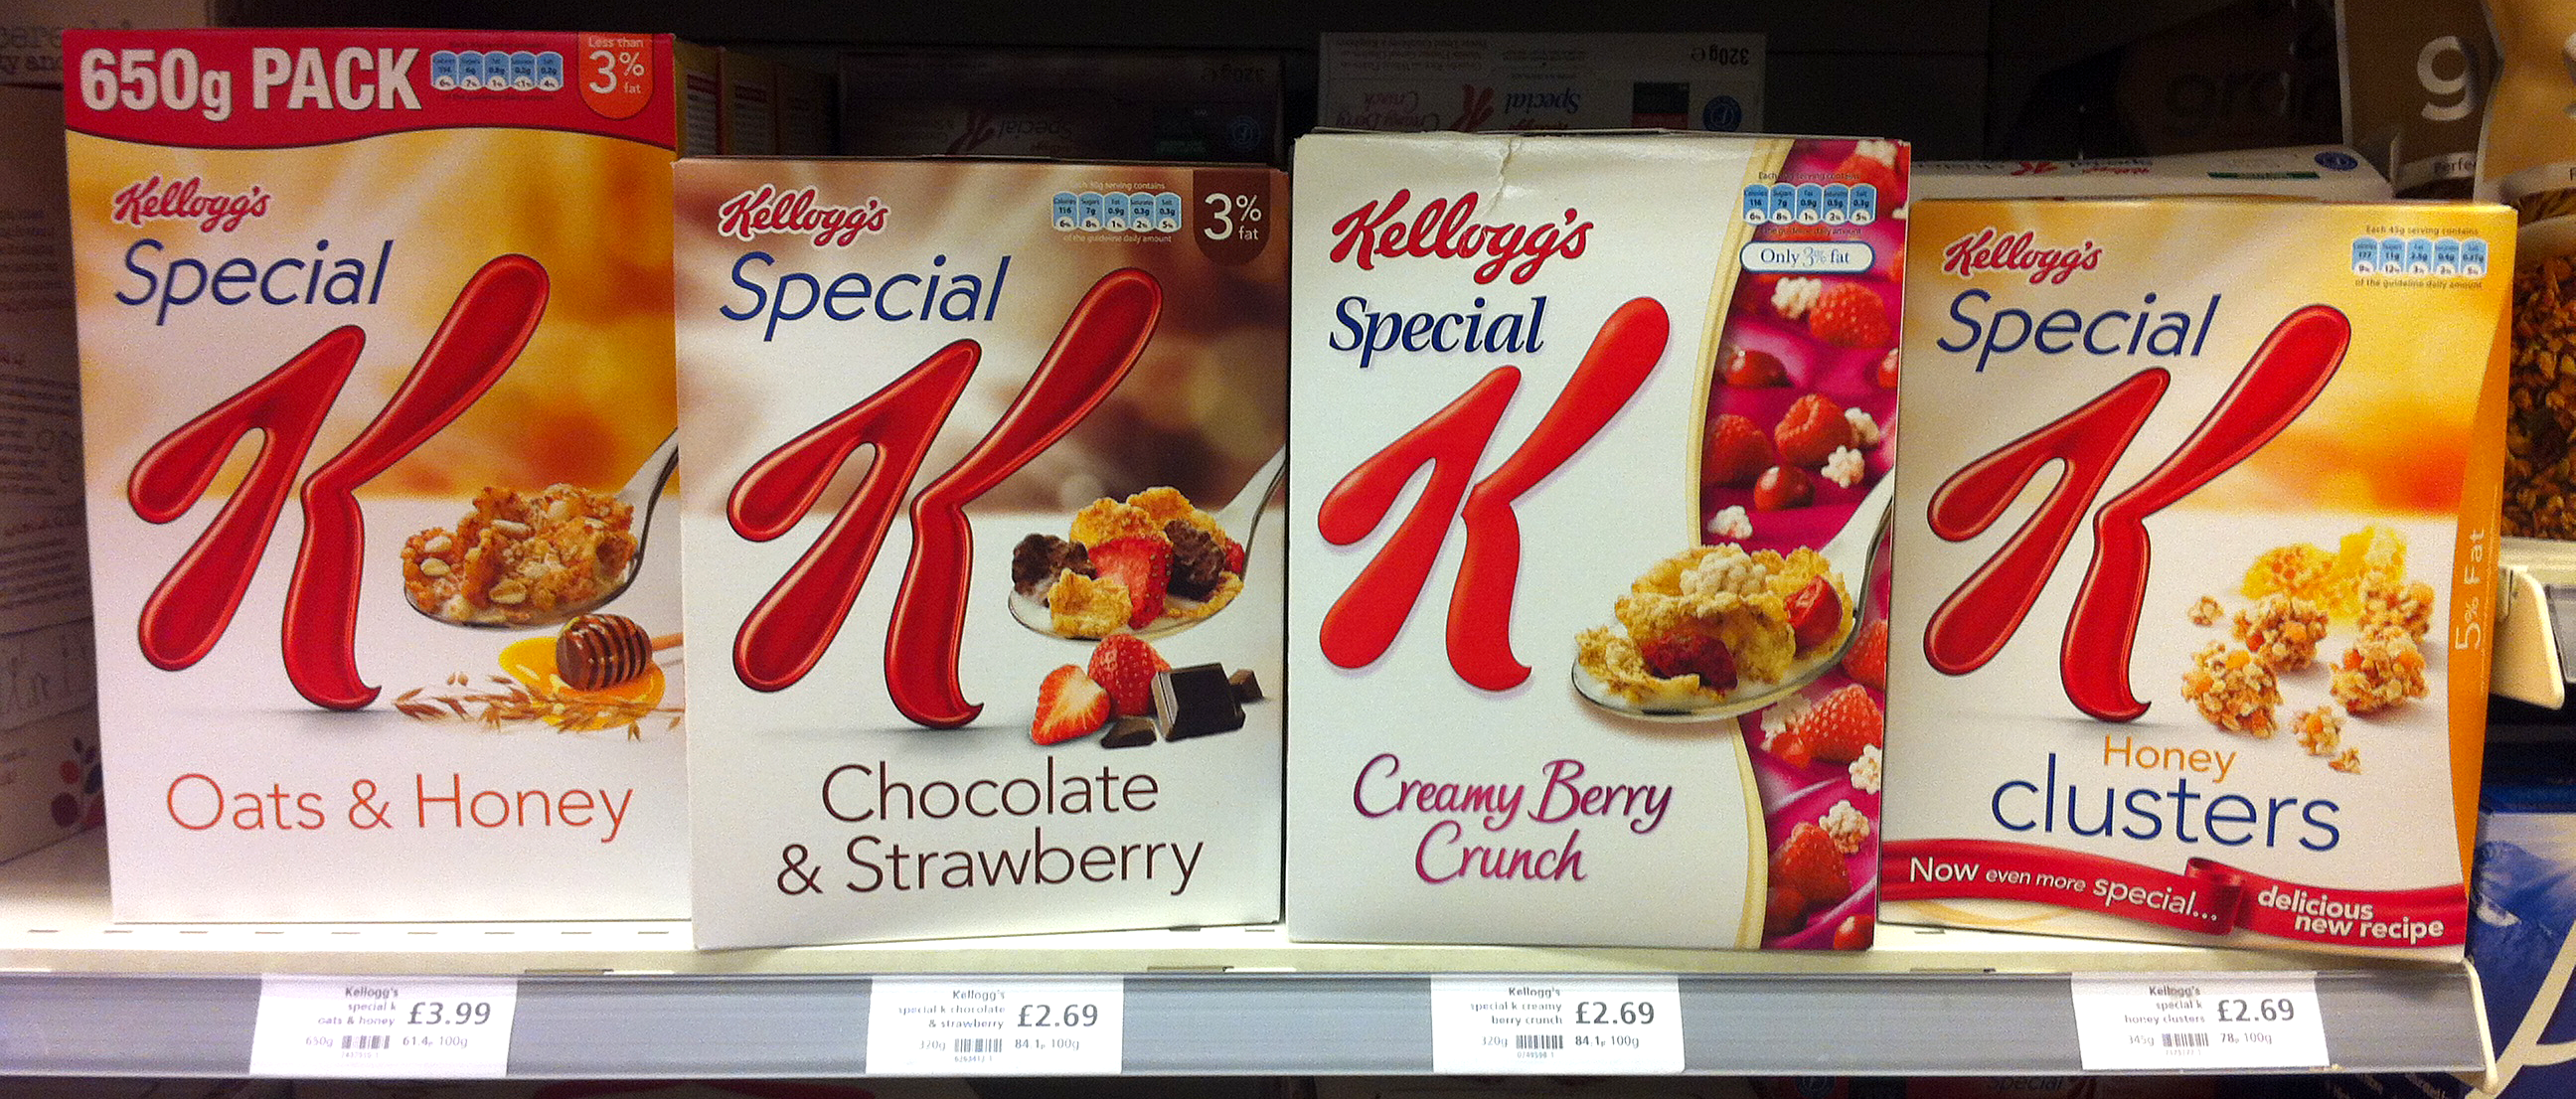 Hey Special K, what is wrong with this picture?